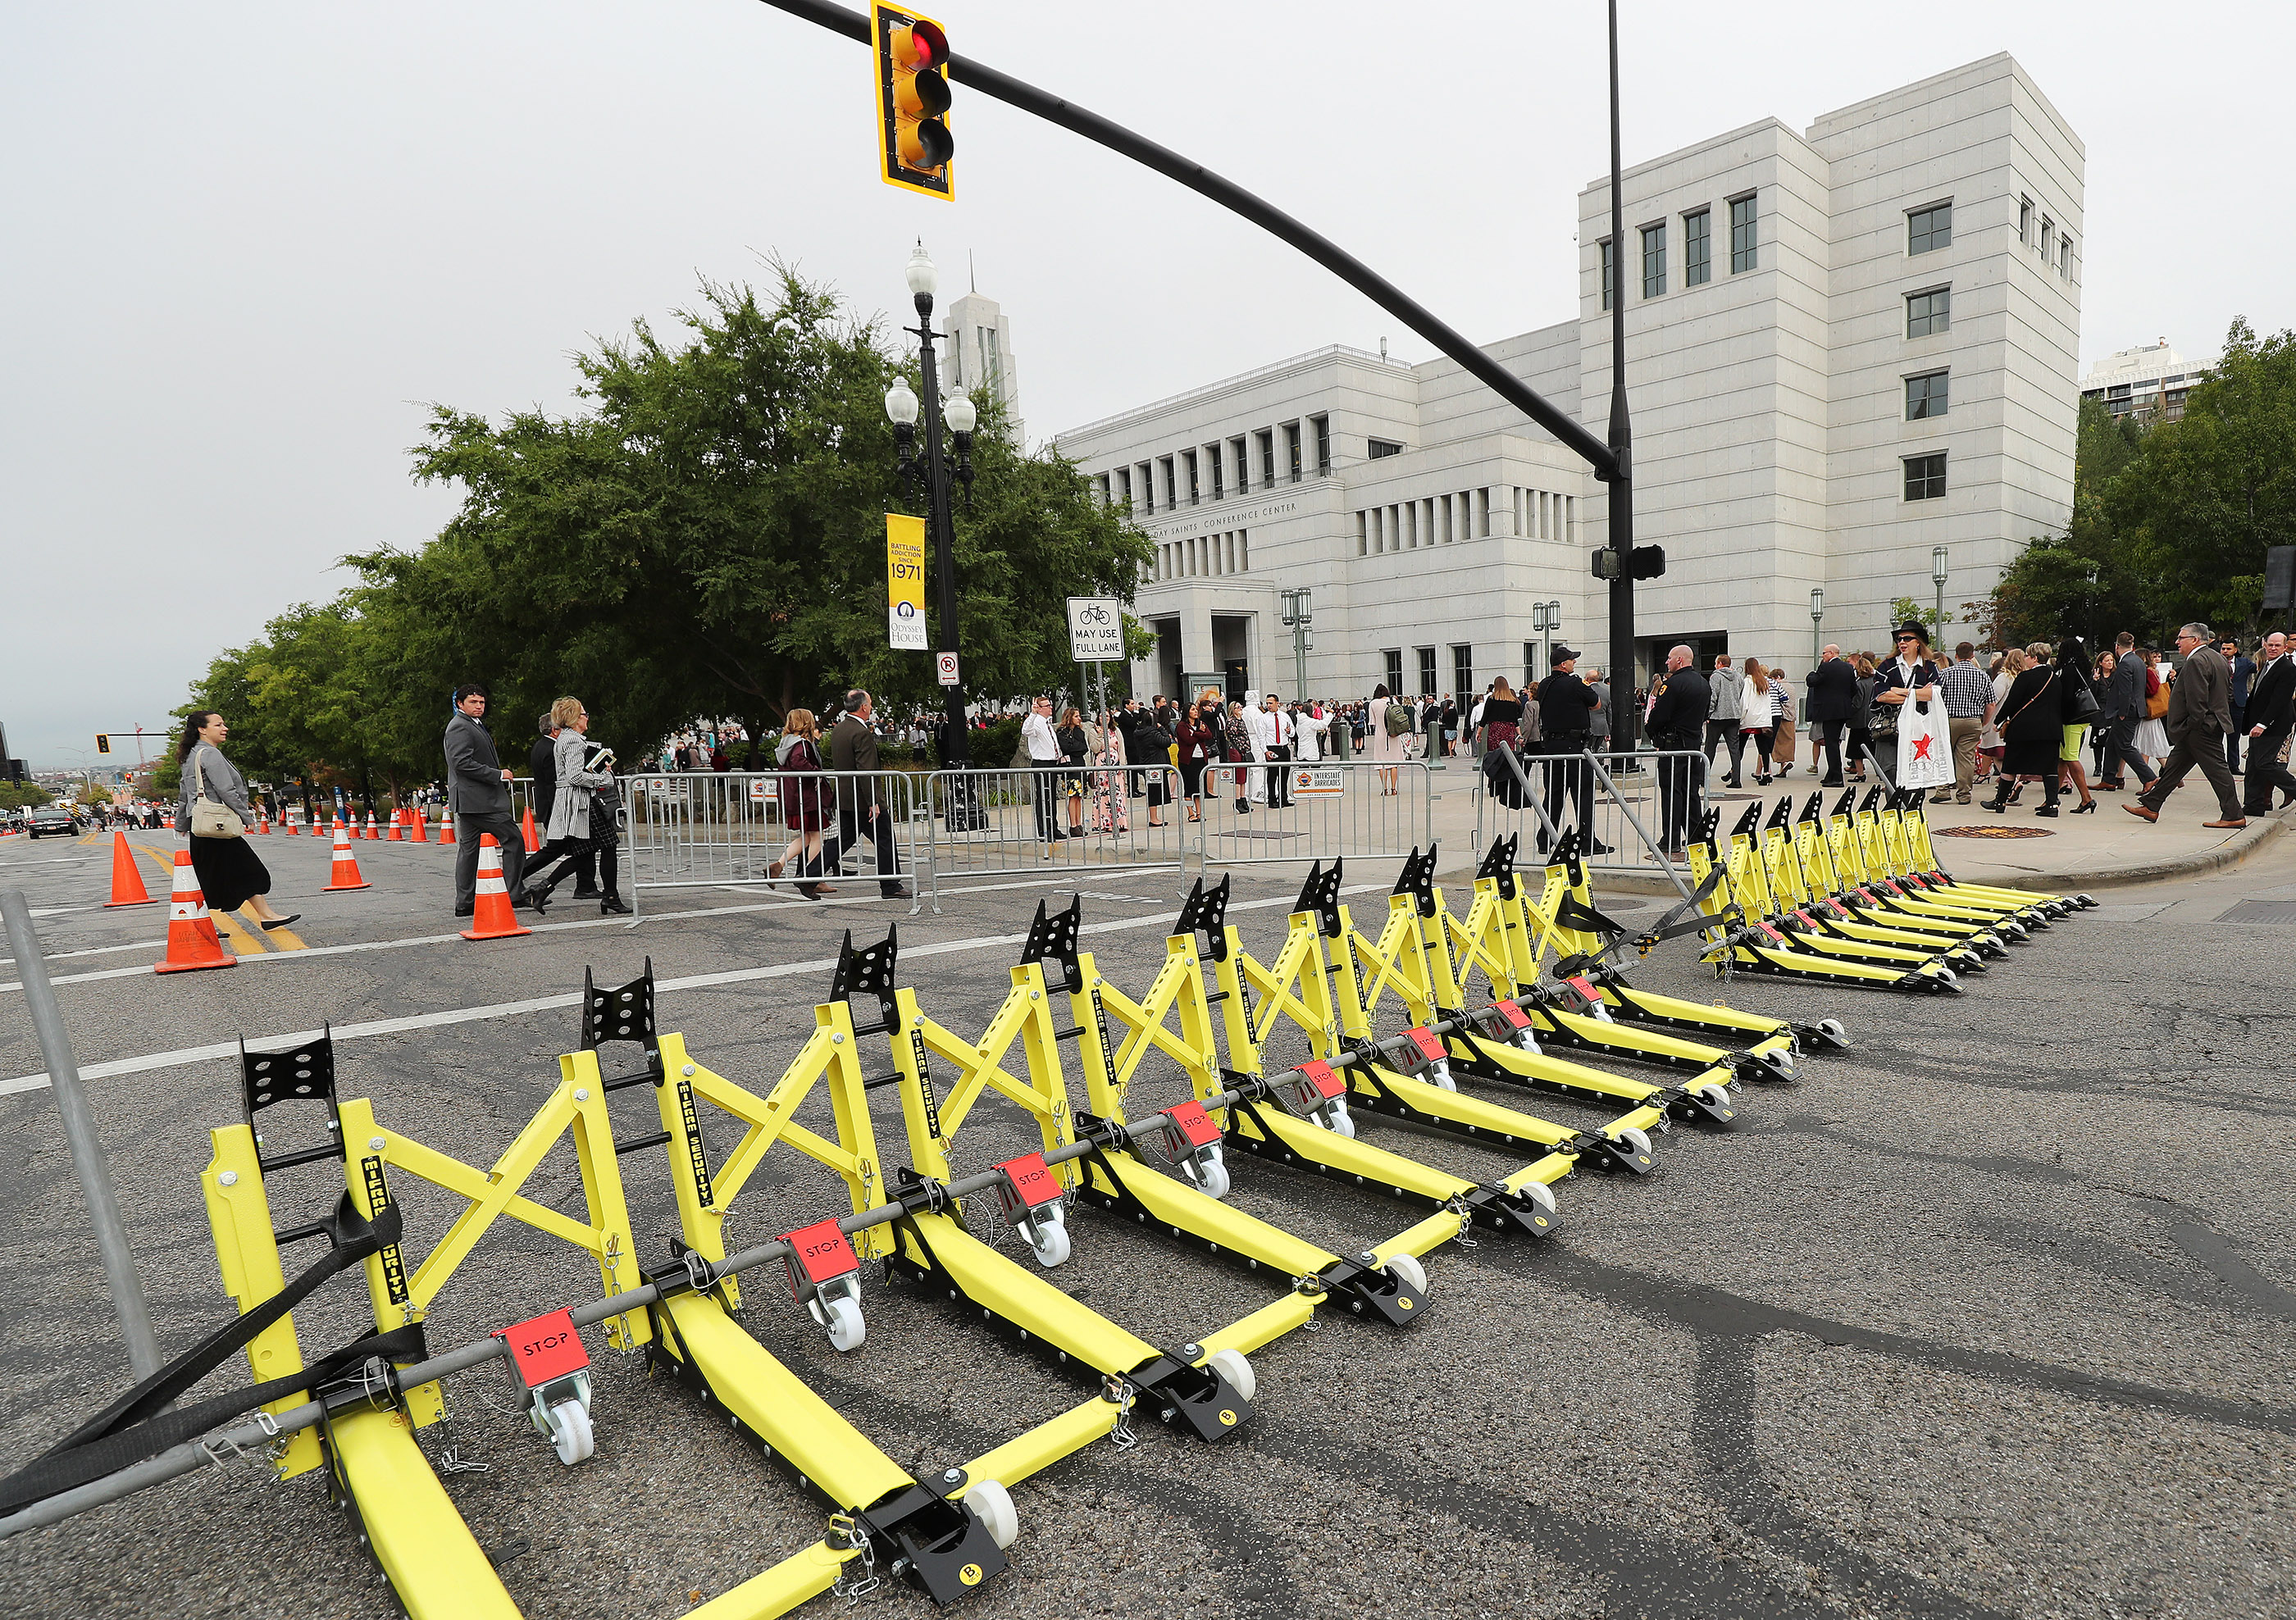 Road barricades line North Temple during the 188th Semiannual General Conference of The Church of Jesus Christ of Latter-day Saints in downtown Salt Lake City on Saturday, Oct. 6, 2018.